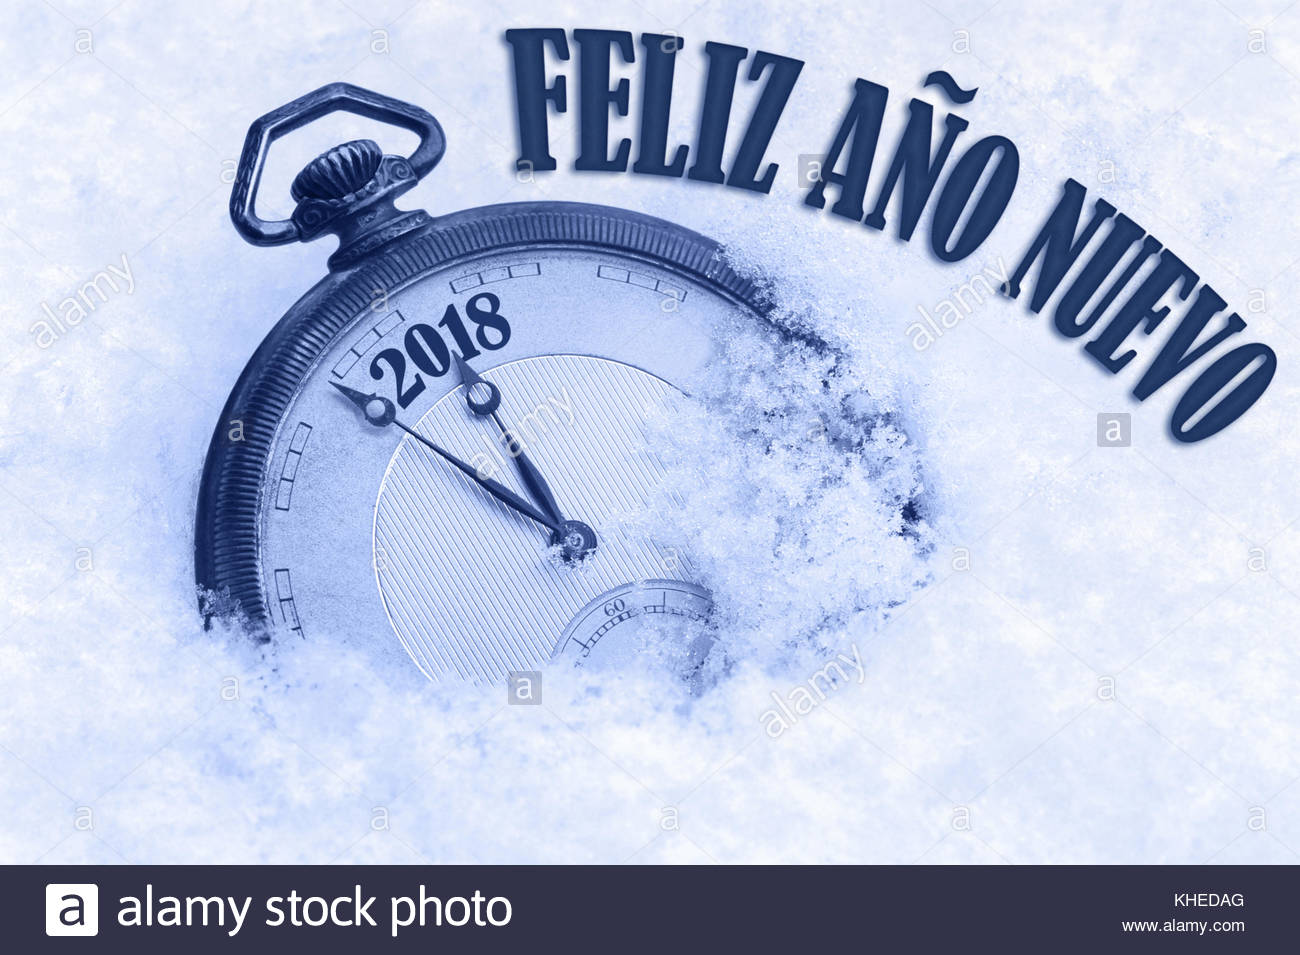 2018 greeting, Happy New Year in Spanish language, Feliz ano nuevo text - Stock Image